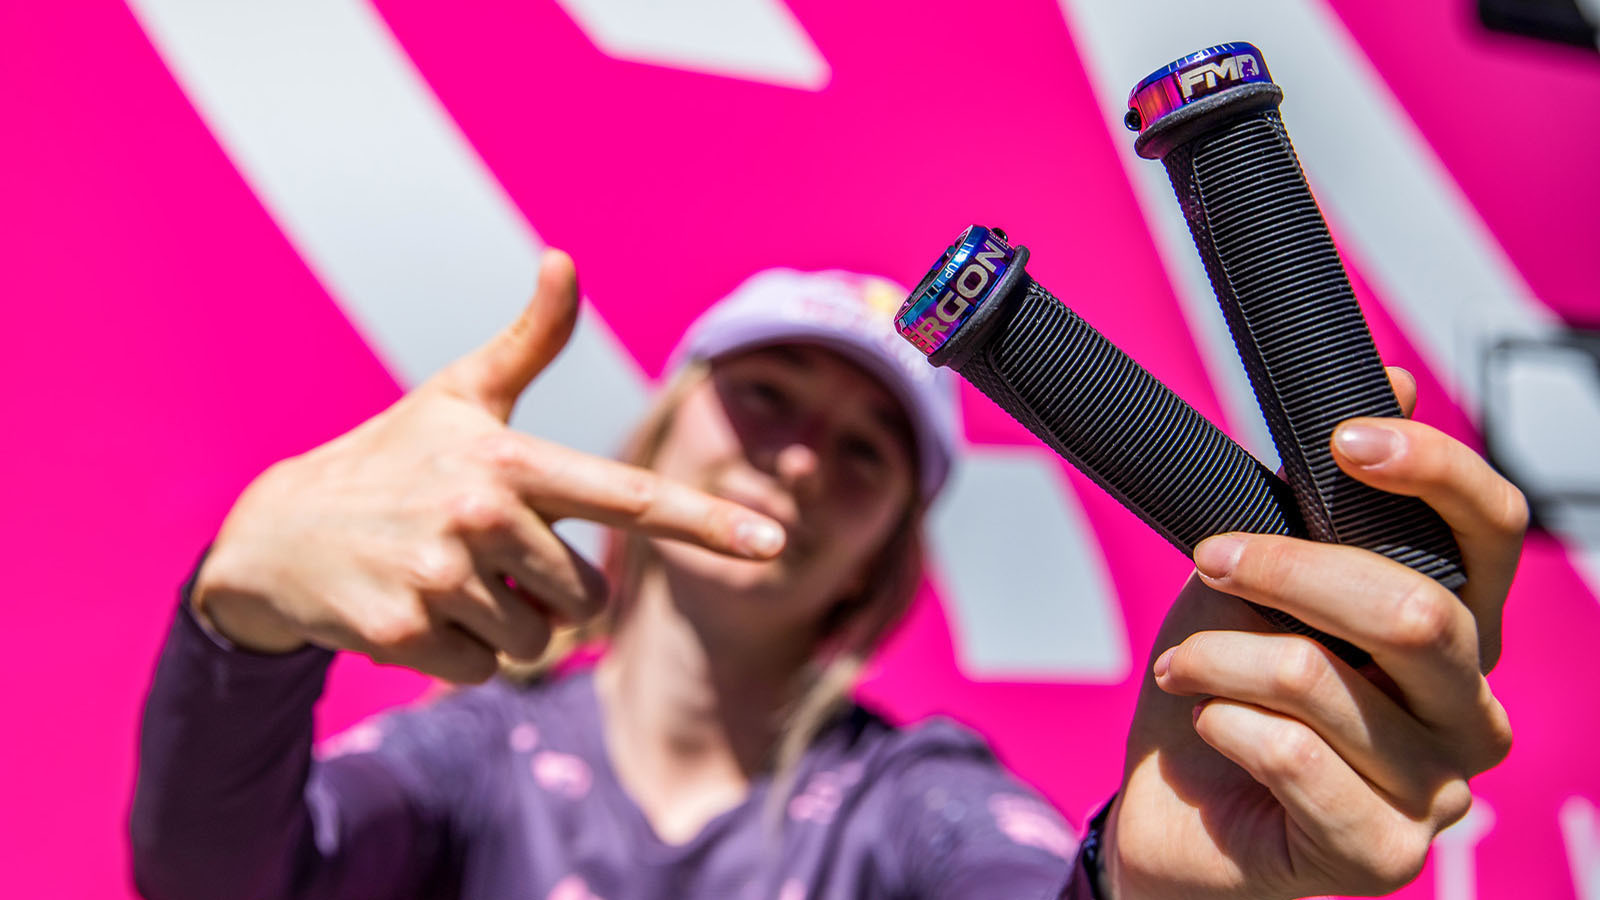 ERGON Launches GFR1 Gravity and Freeride Grips